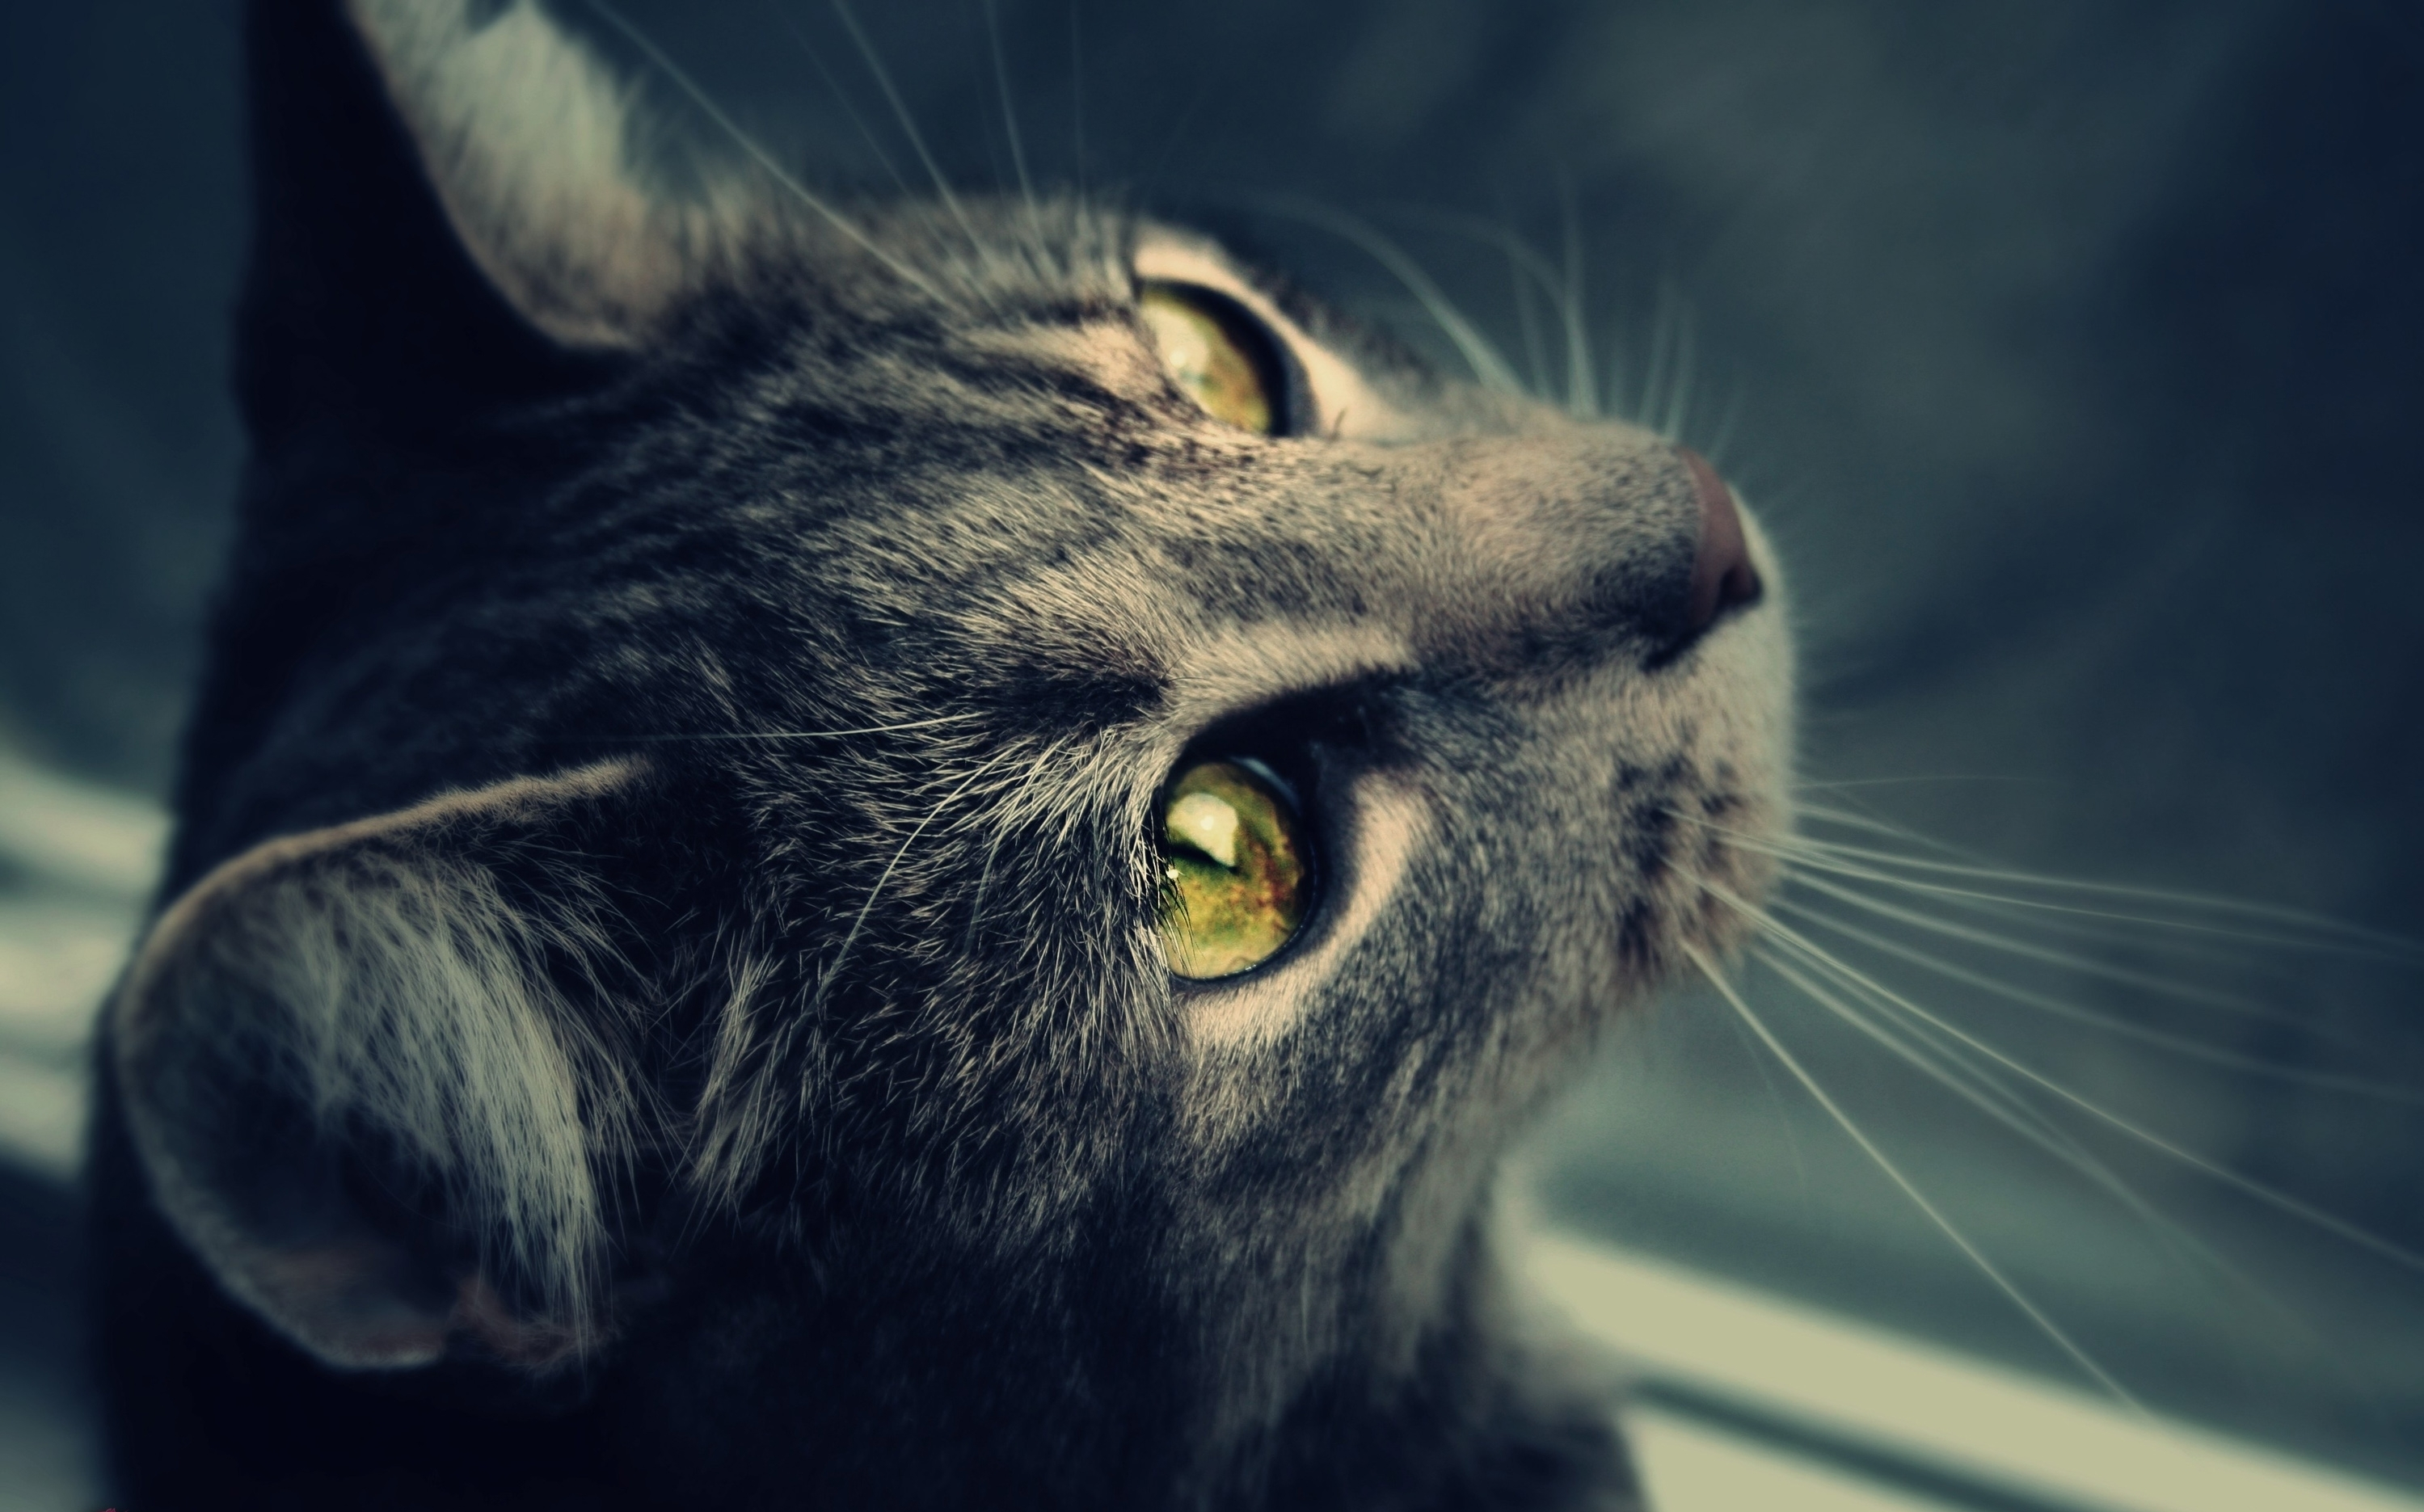 124839 download wallpaper Animals, Cat, Wool, Eyes, Sight, Opinion screensavers and pictures for free